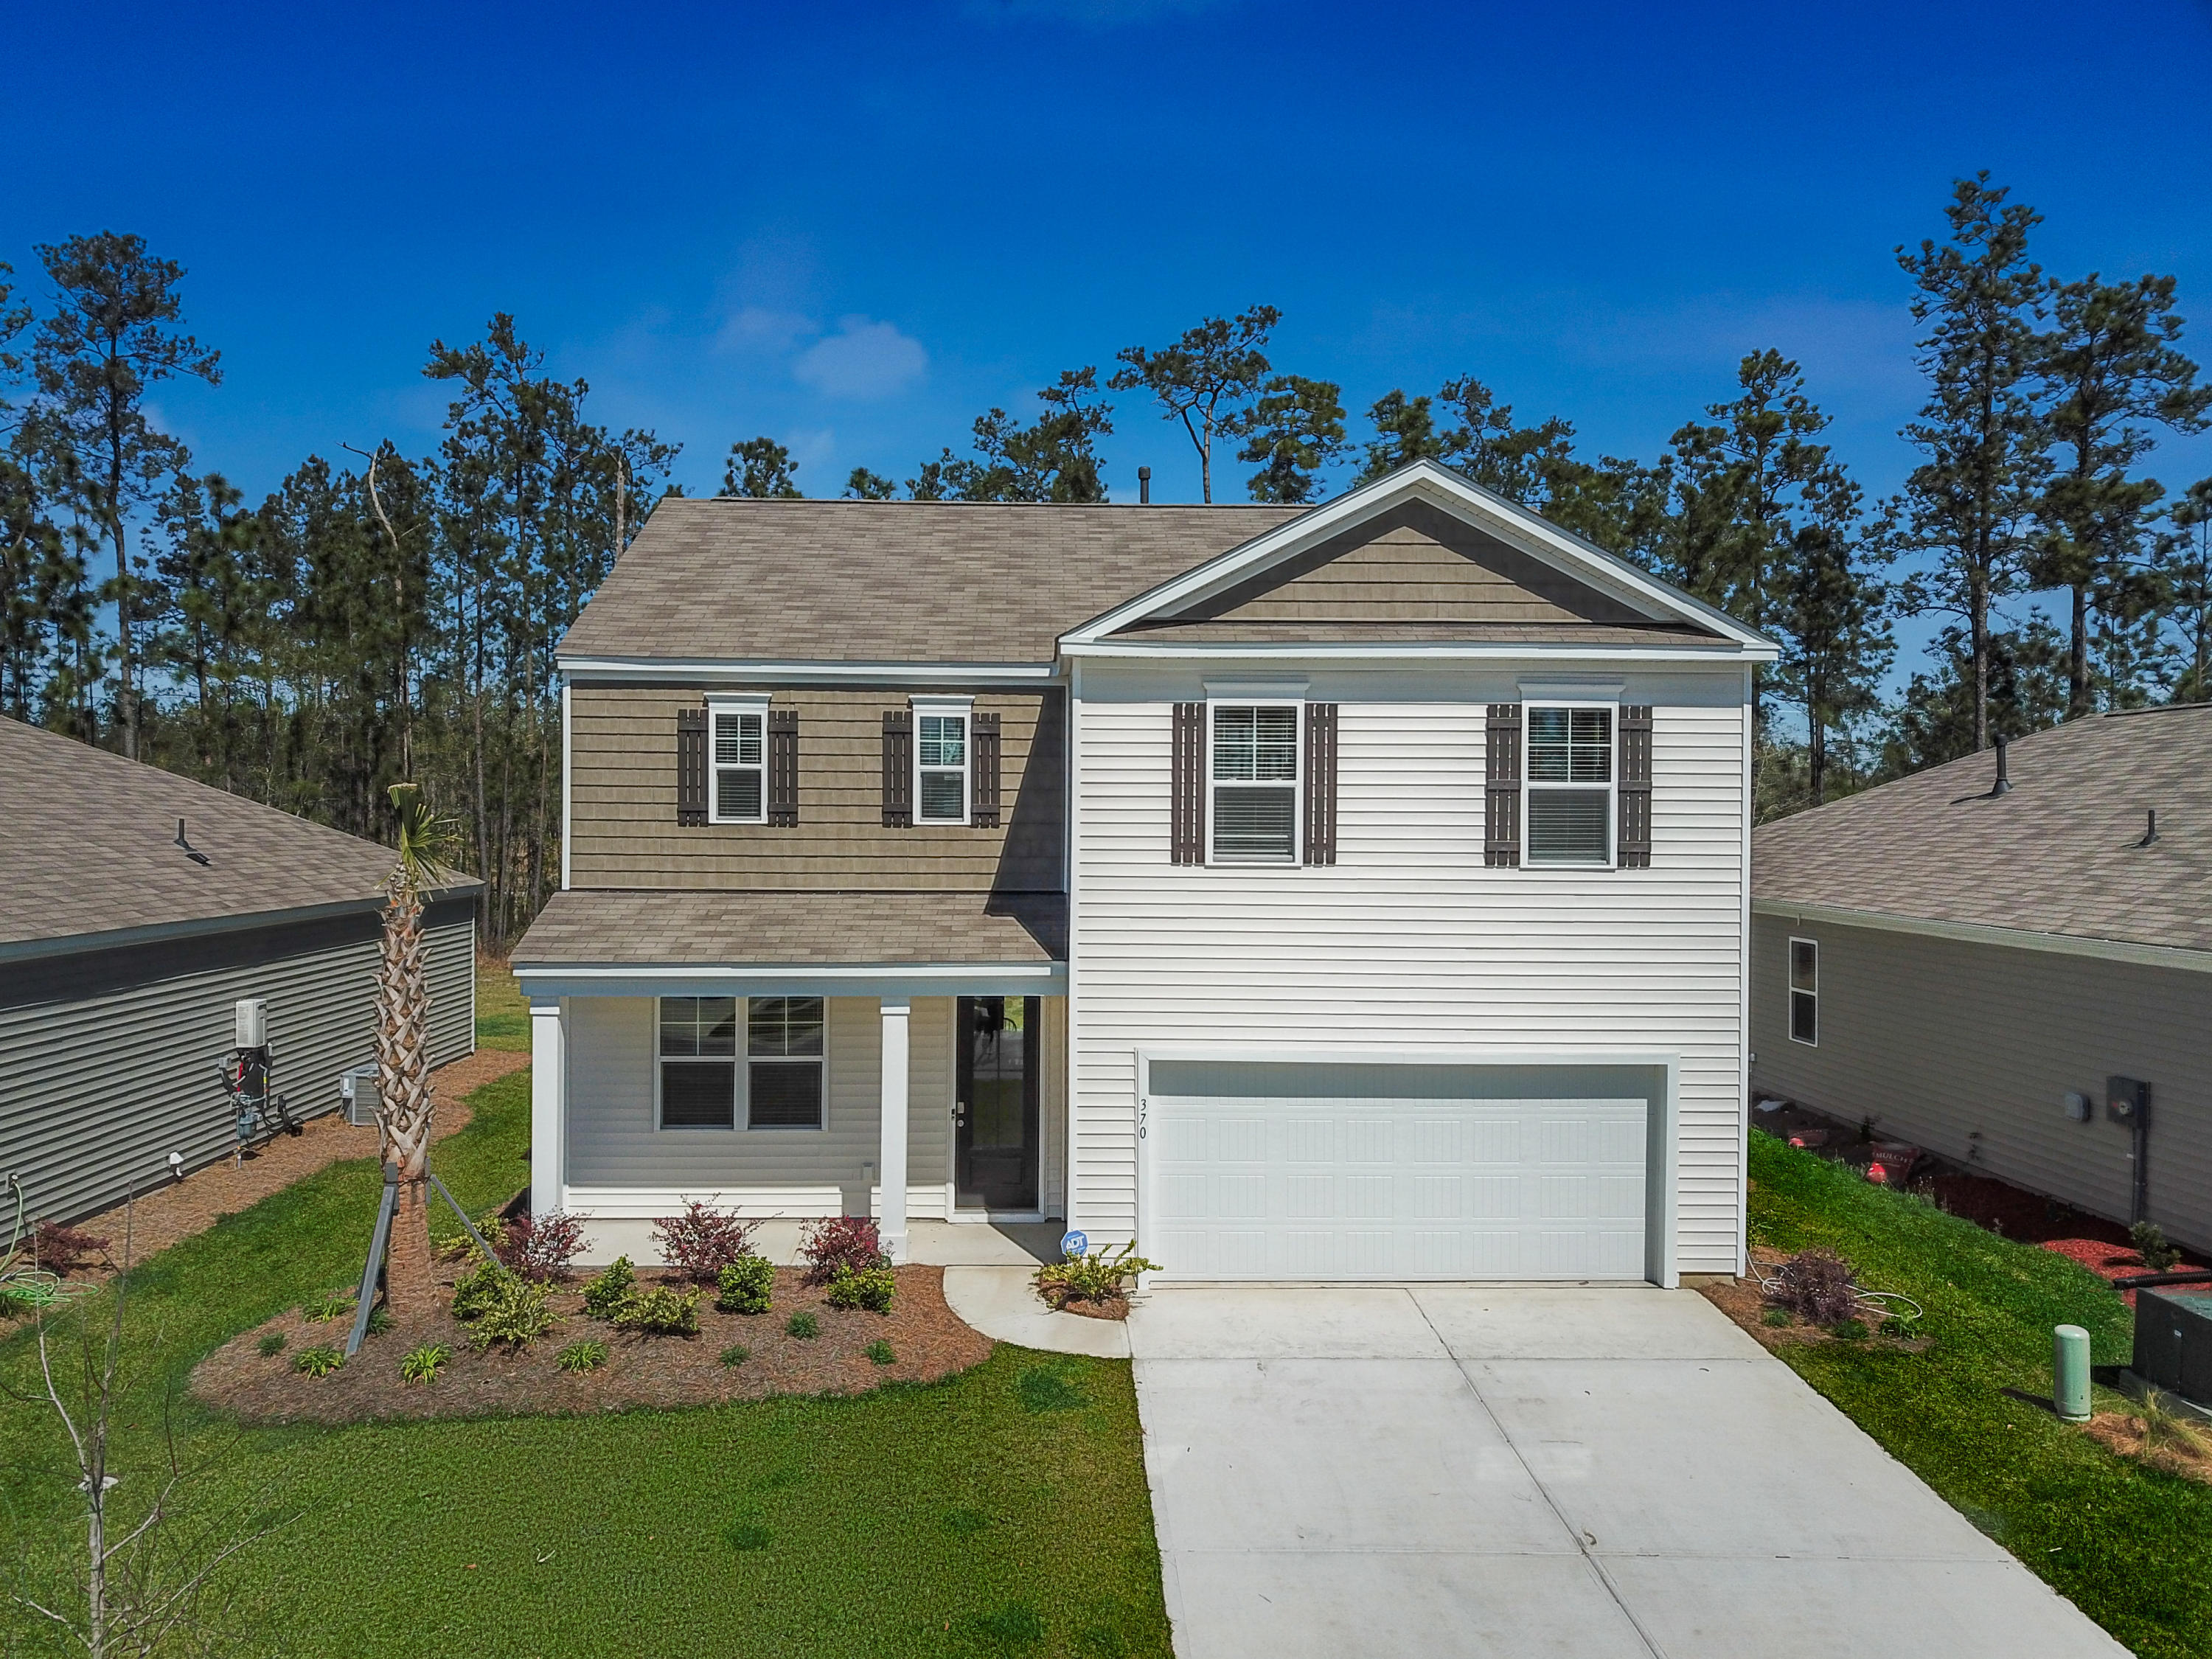 370 Bering Lane Summerville, SC 29486